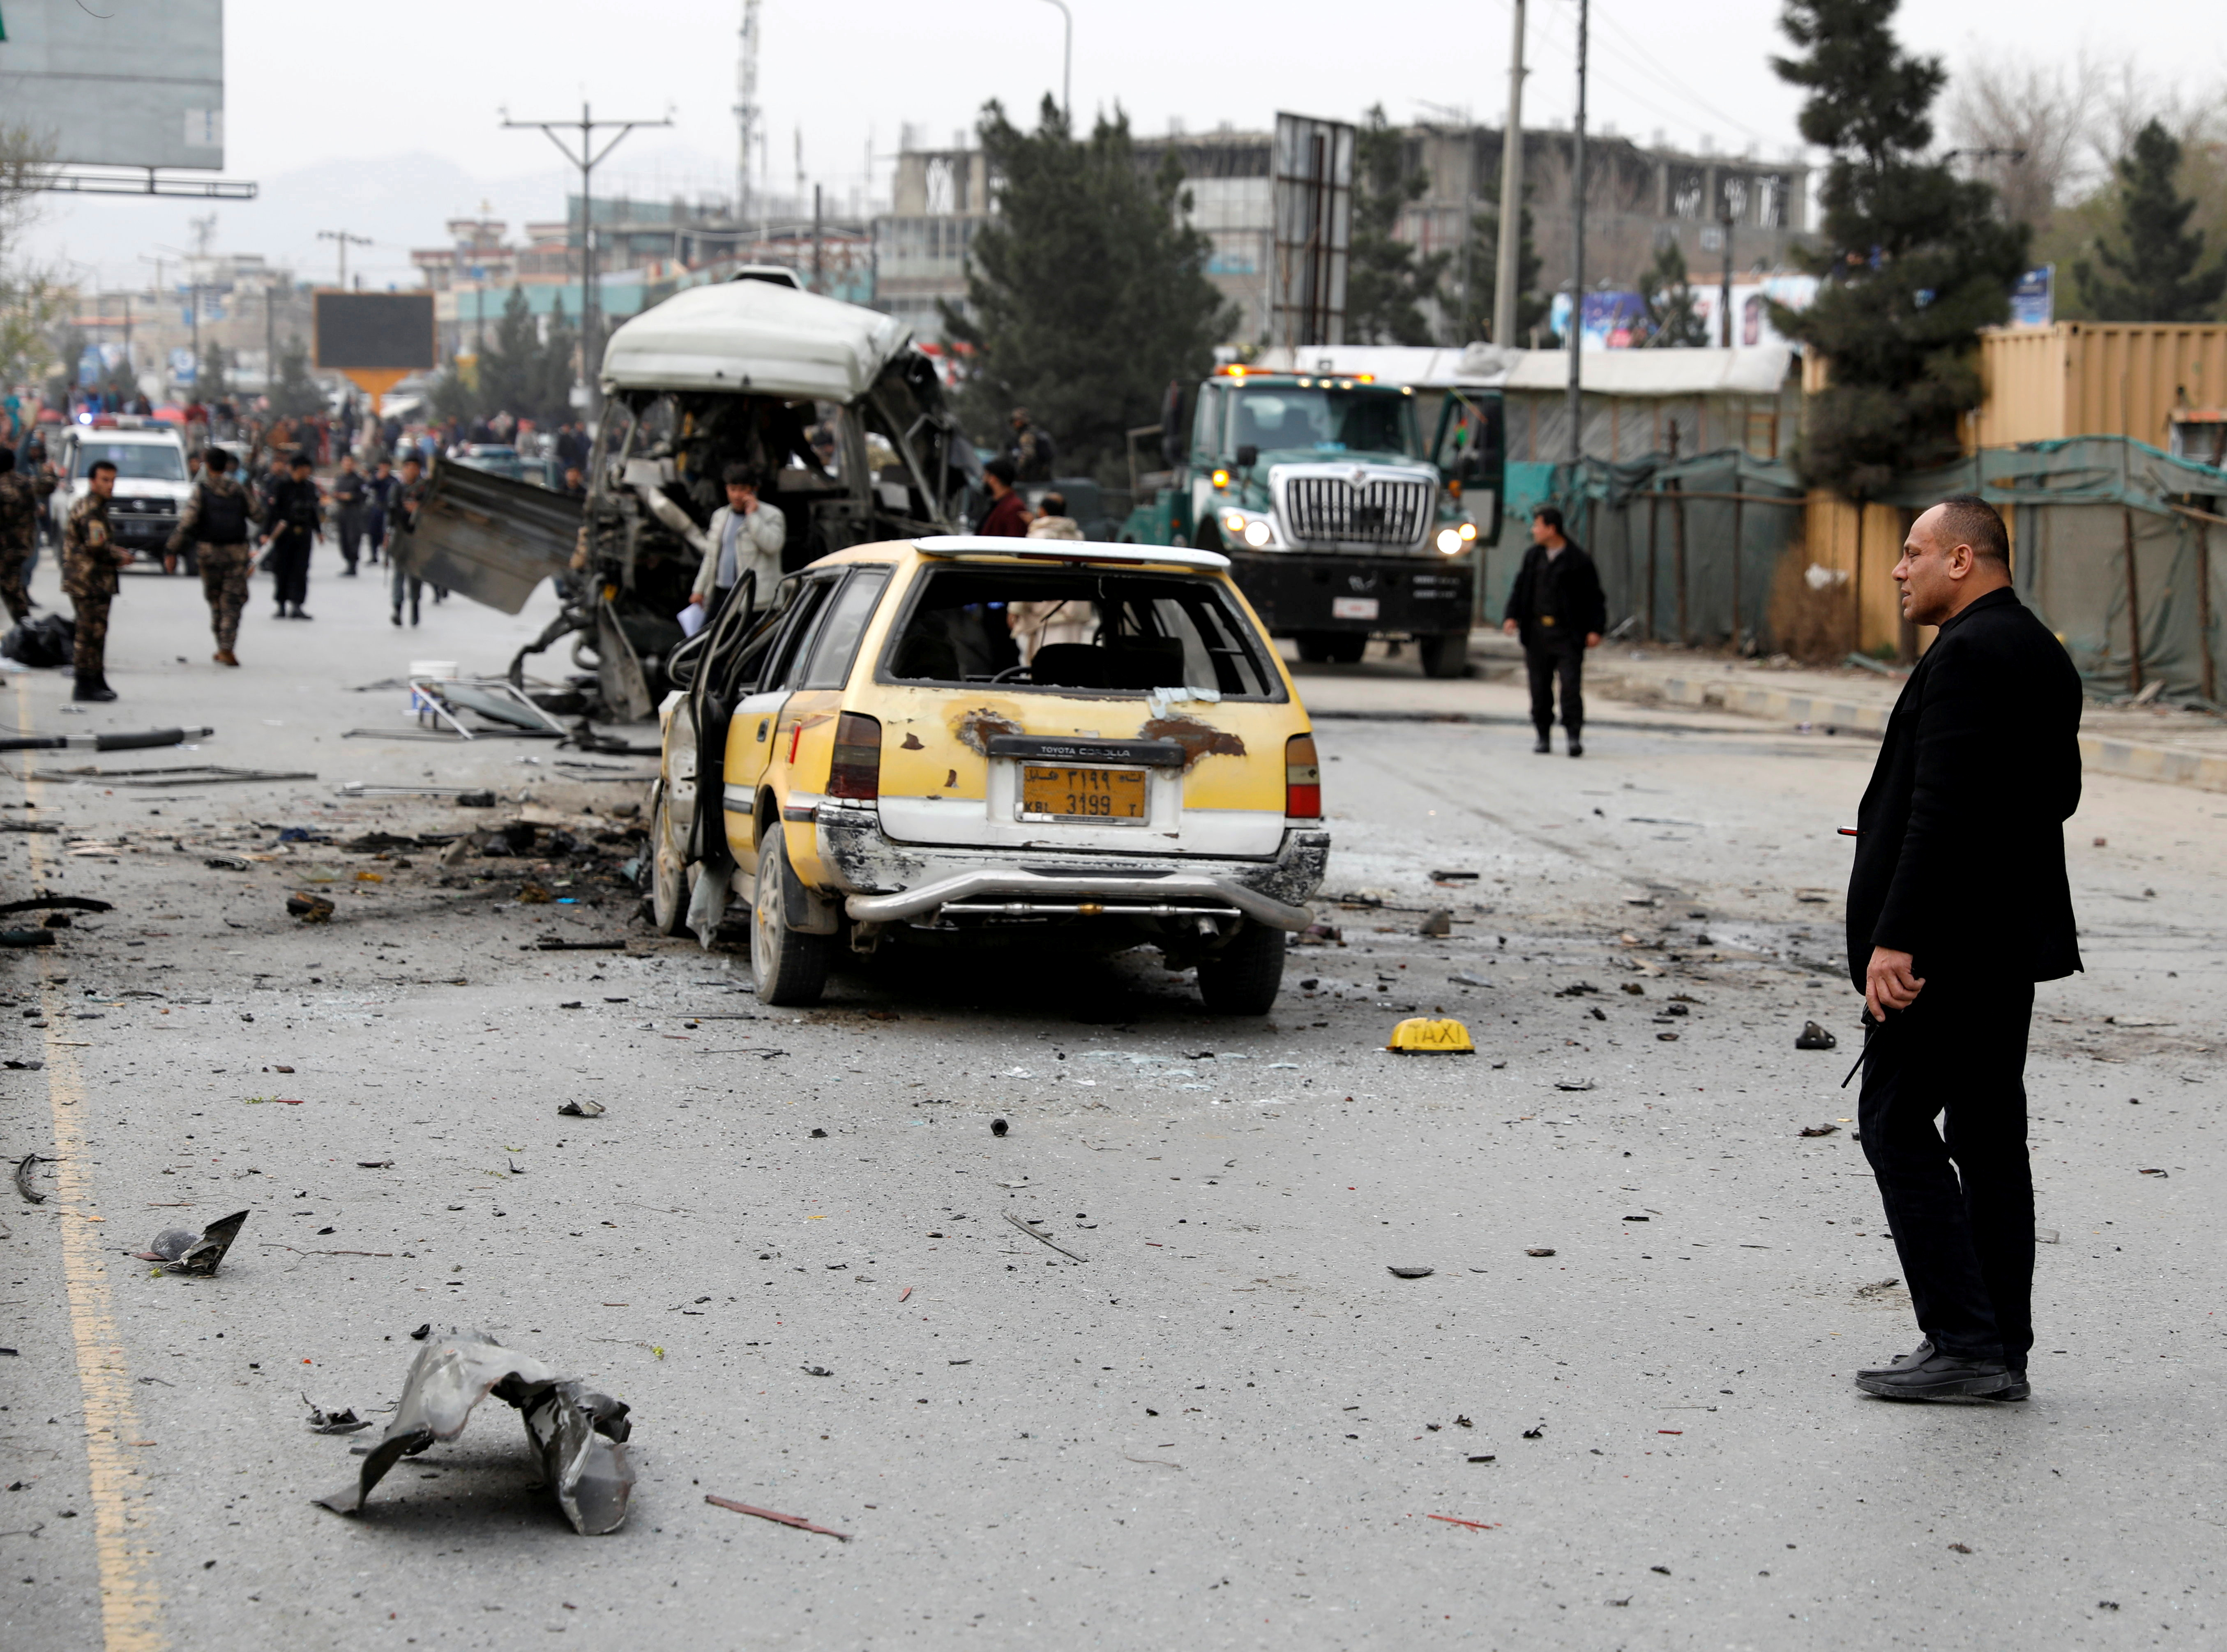 Afghan officials inspect a damaged minibus after a blast in Kabul, Afghanistan March 15, 2021. REUTERS/Mohammad Ismail/File Photo